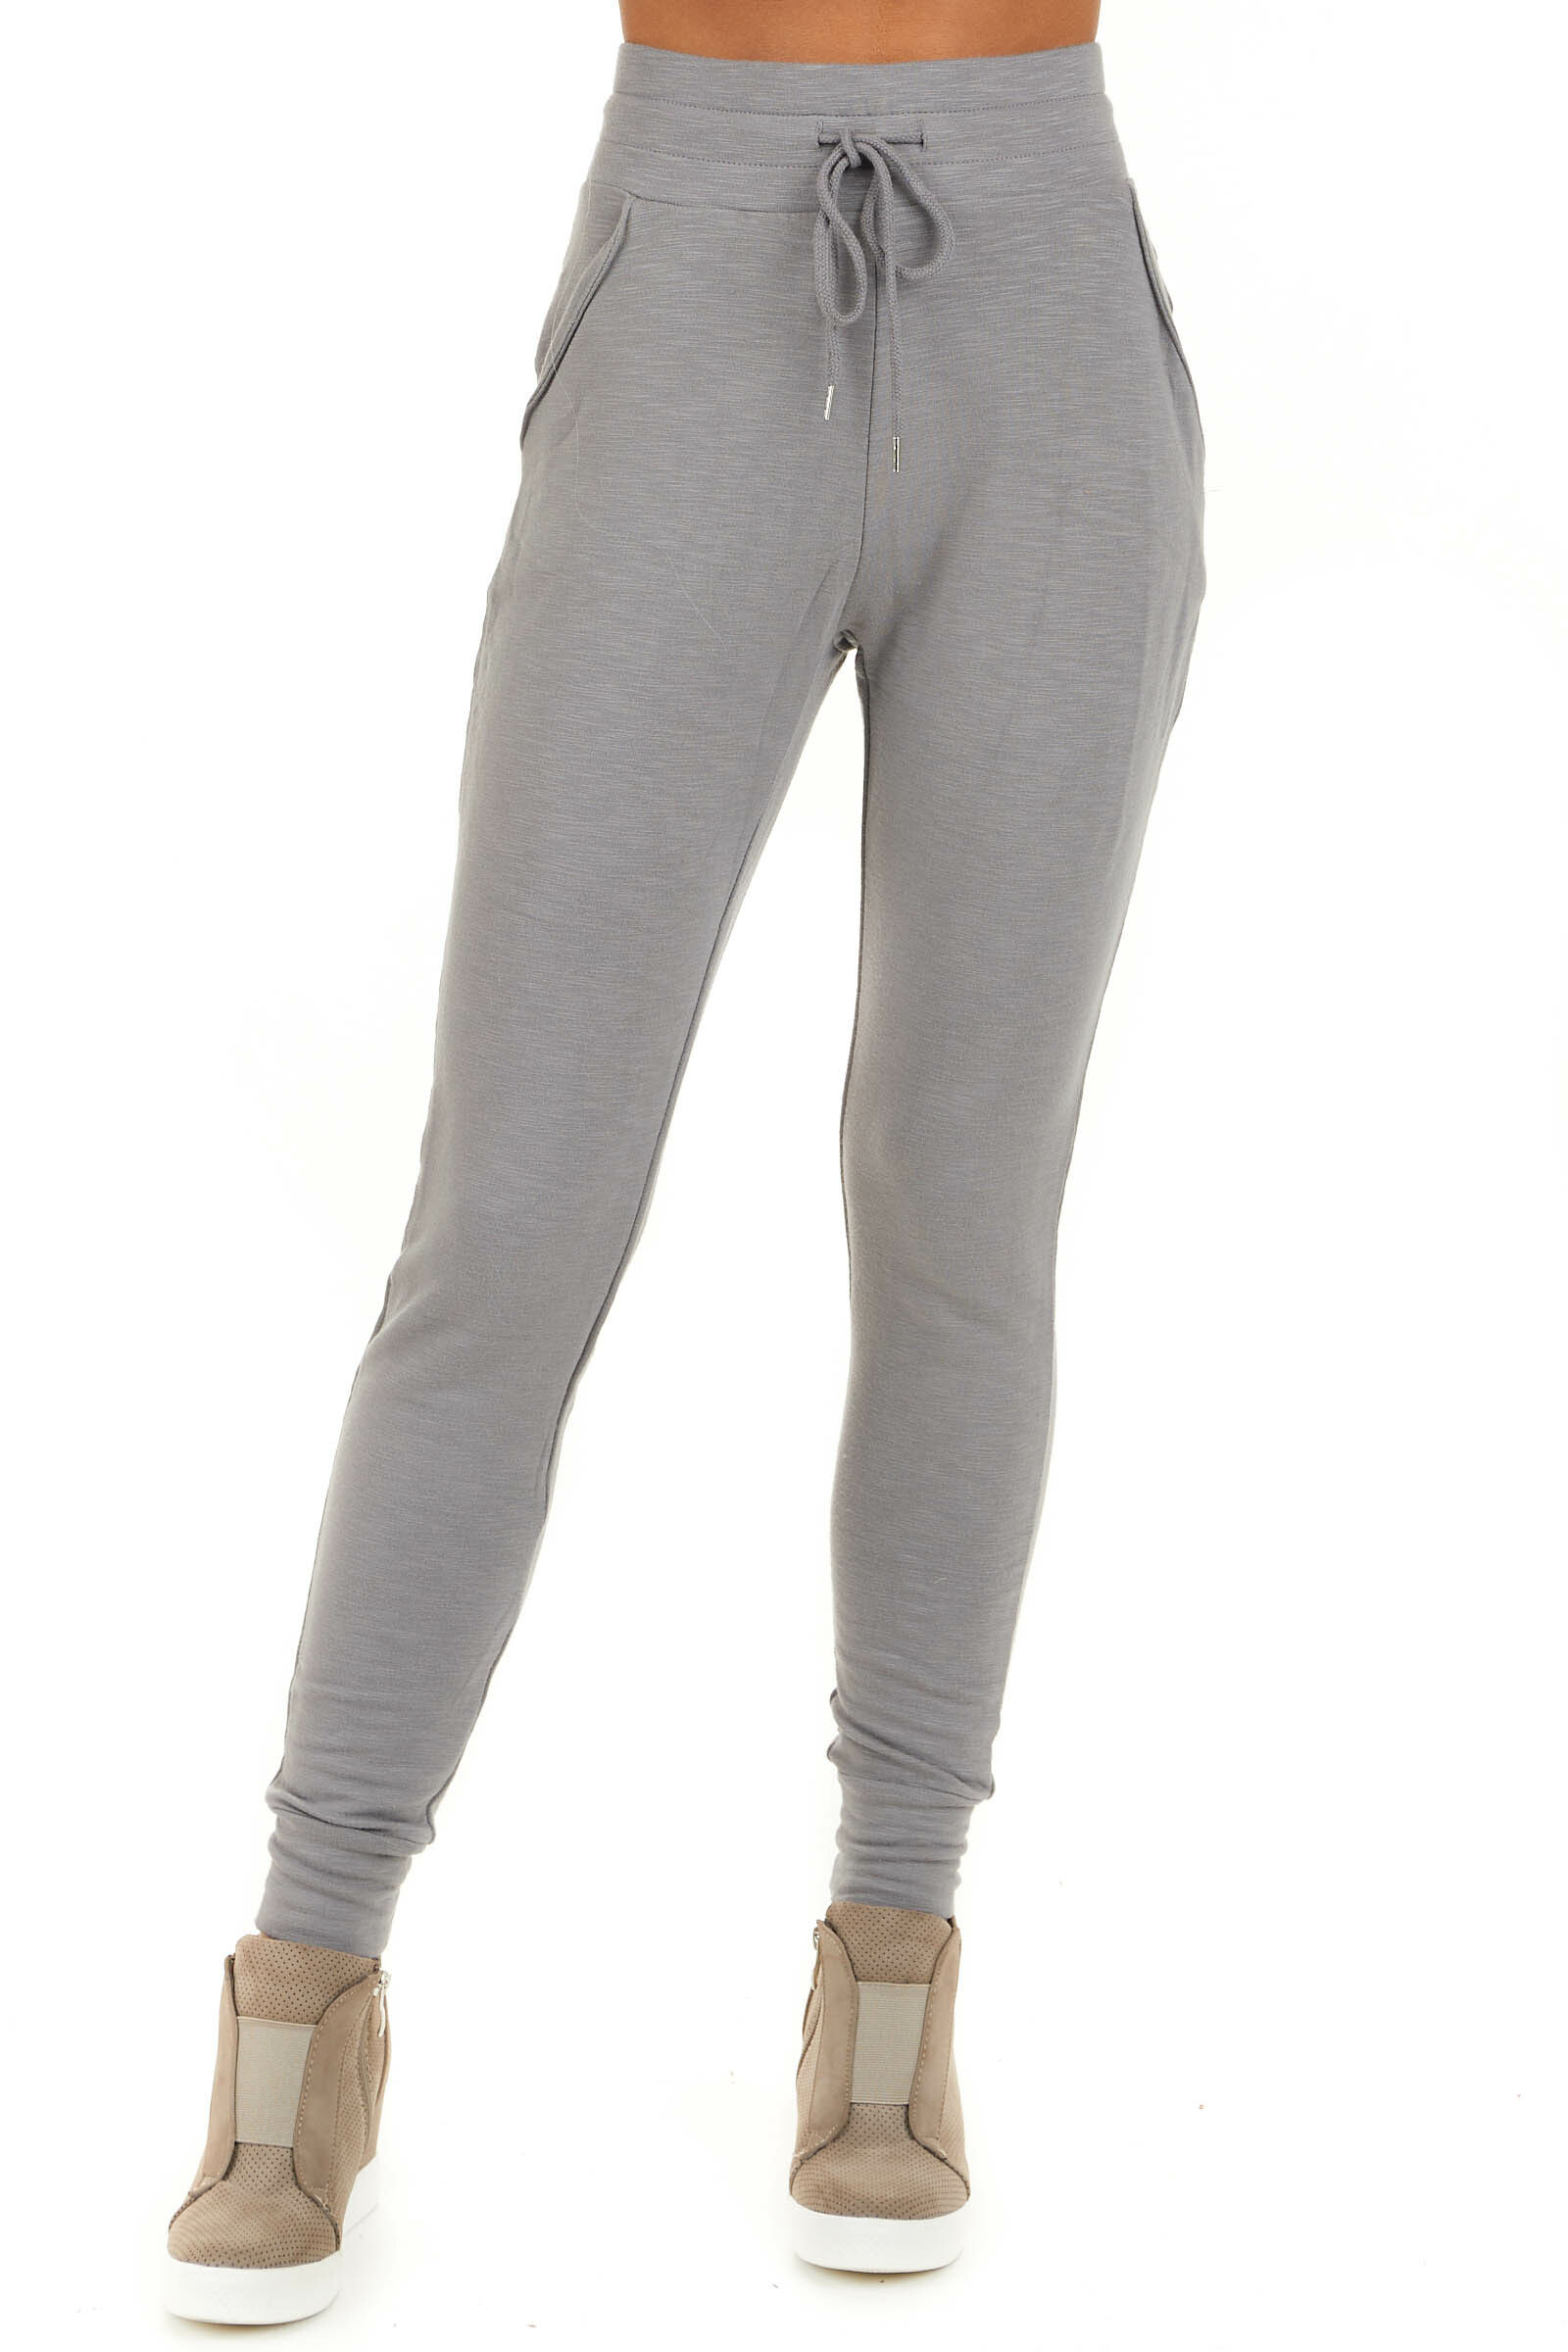 Heather Grey Joggers with Front Pockets and Drawstring Waist front view